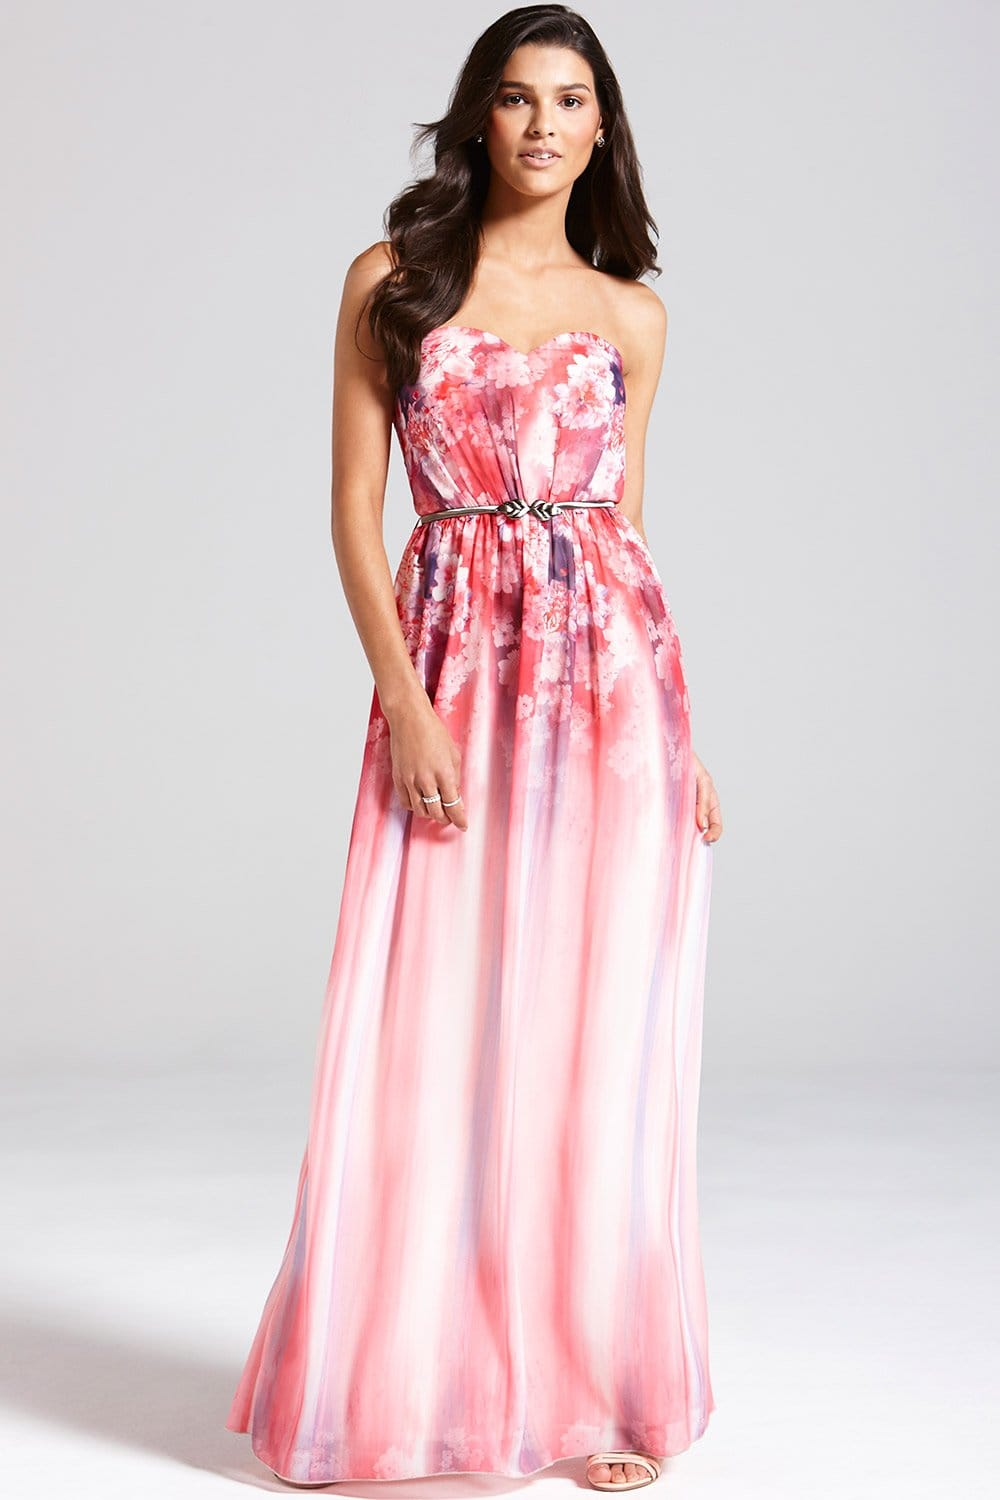 Pink Floral Bandeau Maxi Dress - from Little Mistress UK